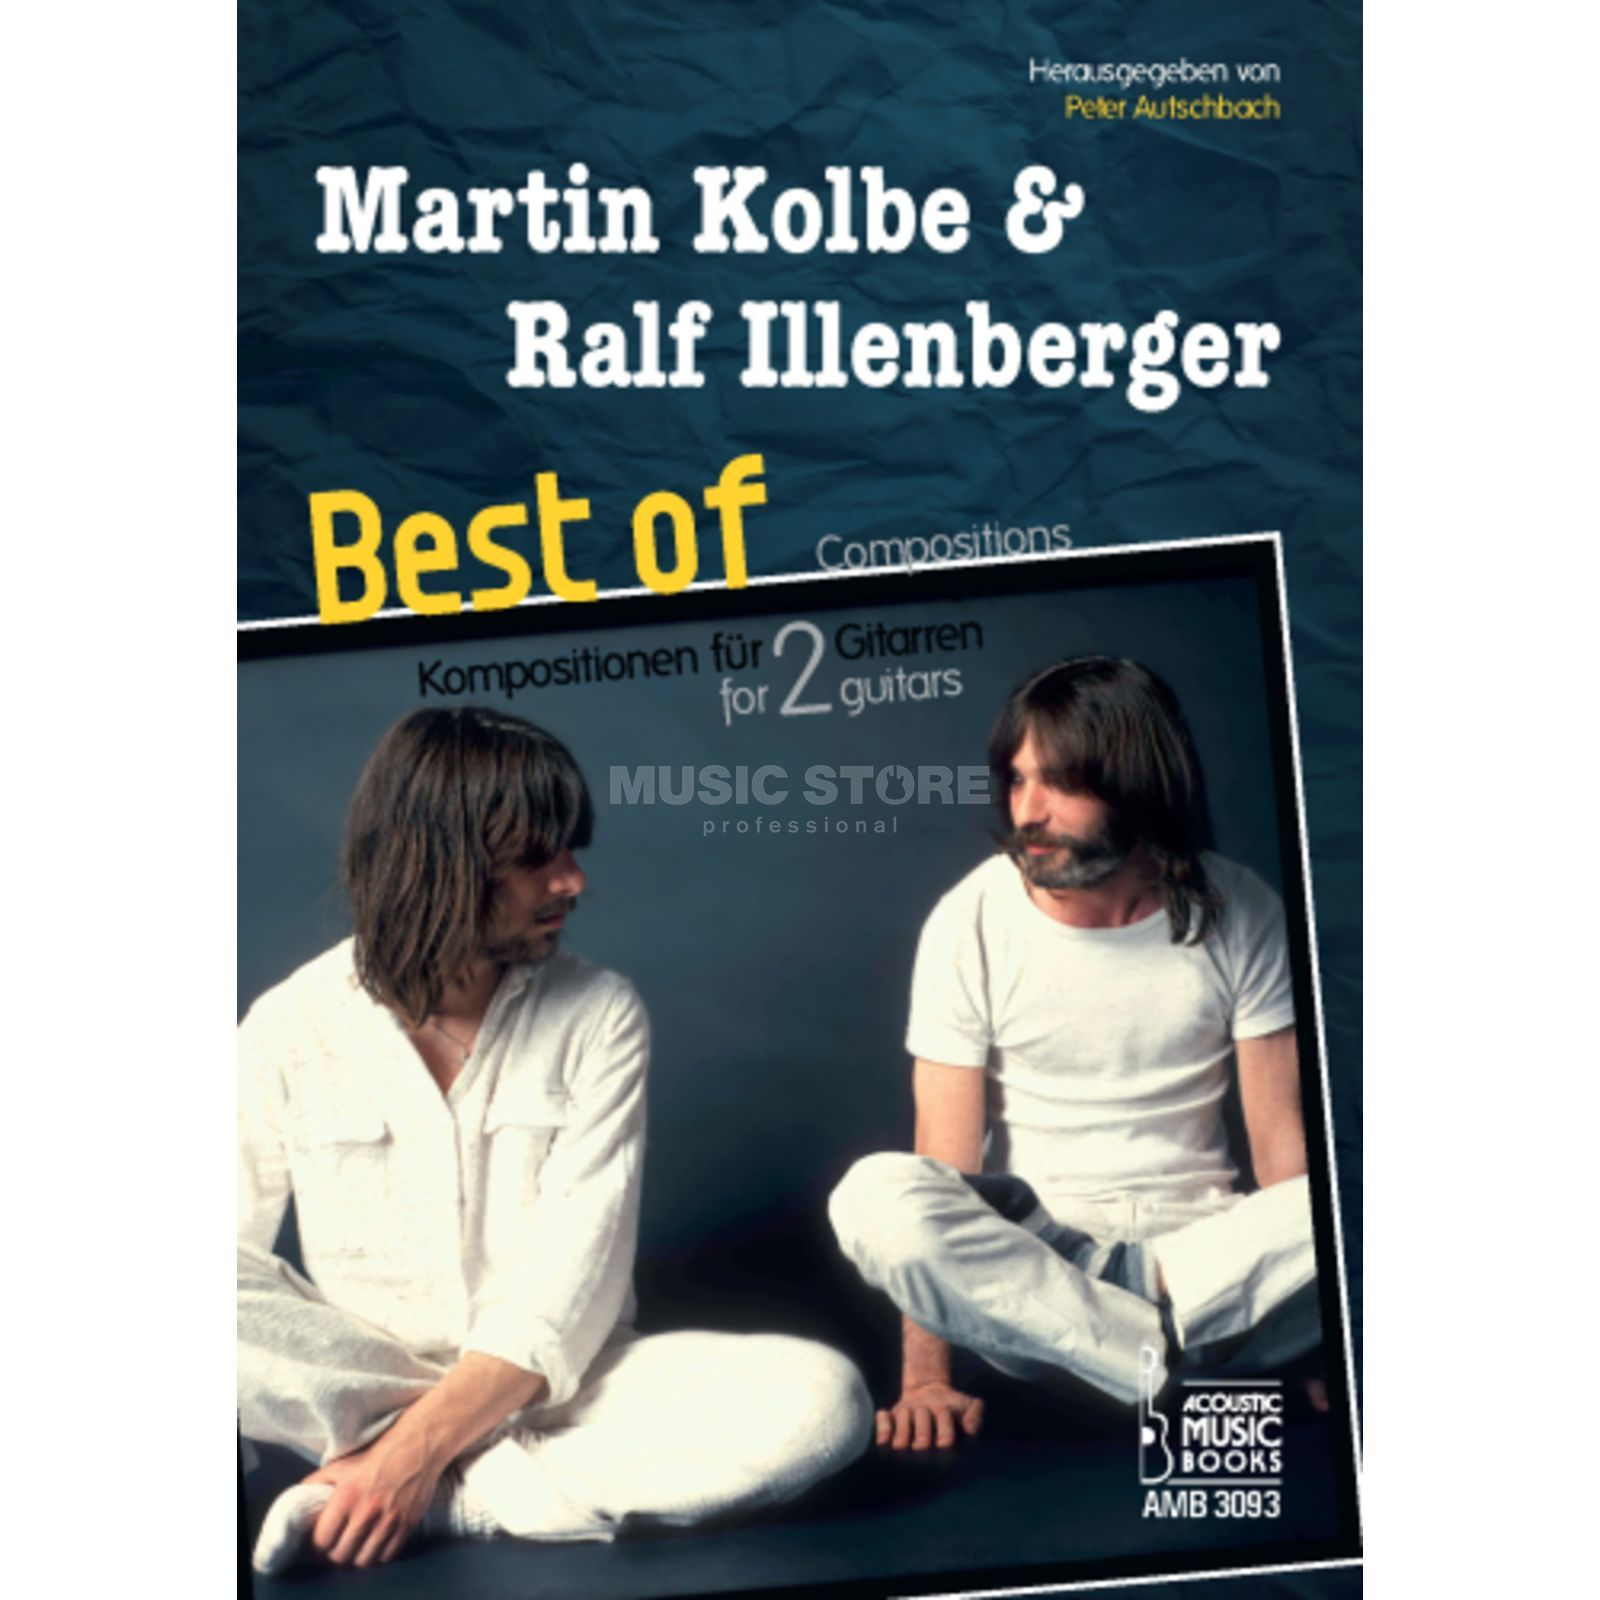 Acoustic Music Books Kolbe/Illenbeger: Best of Kompositionen für 2 Gitarren Produktbillede